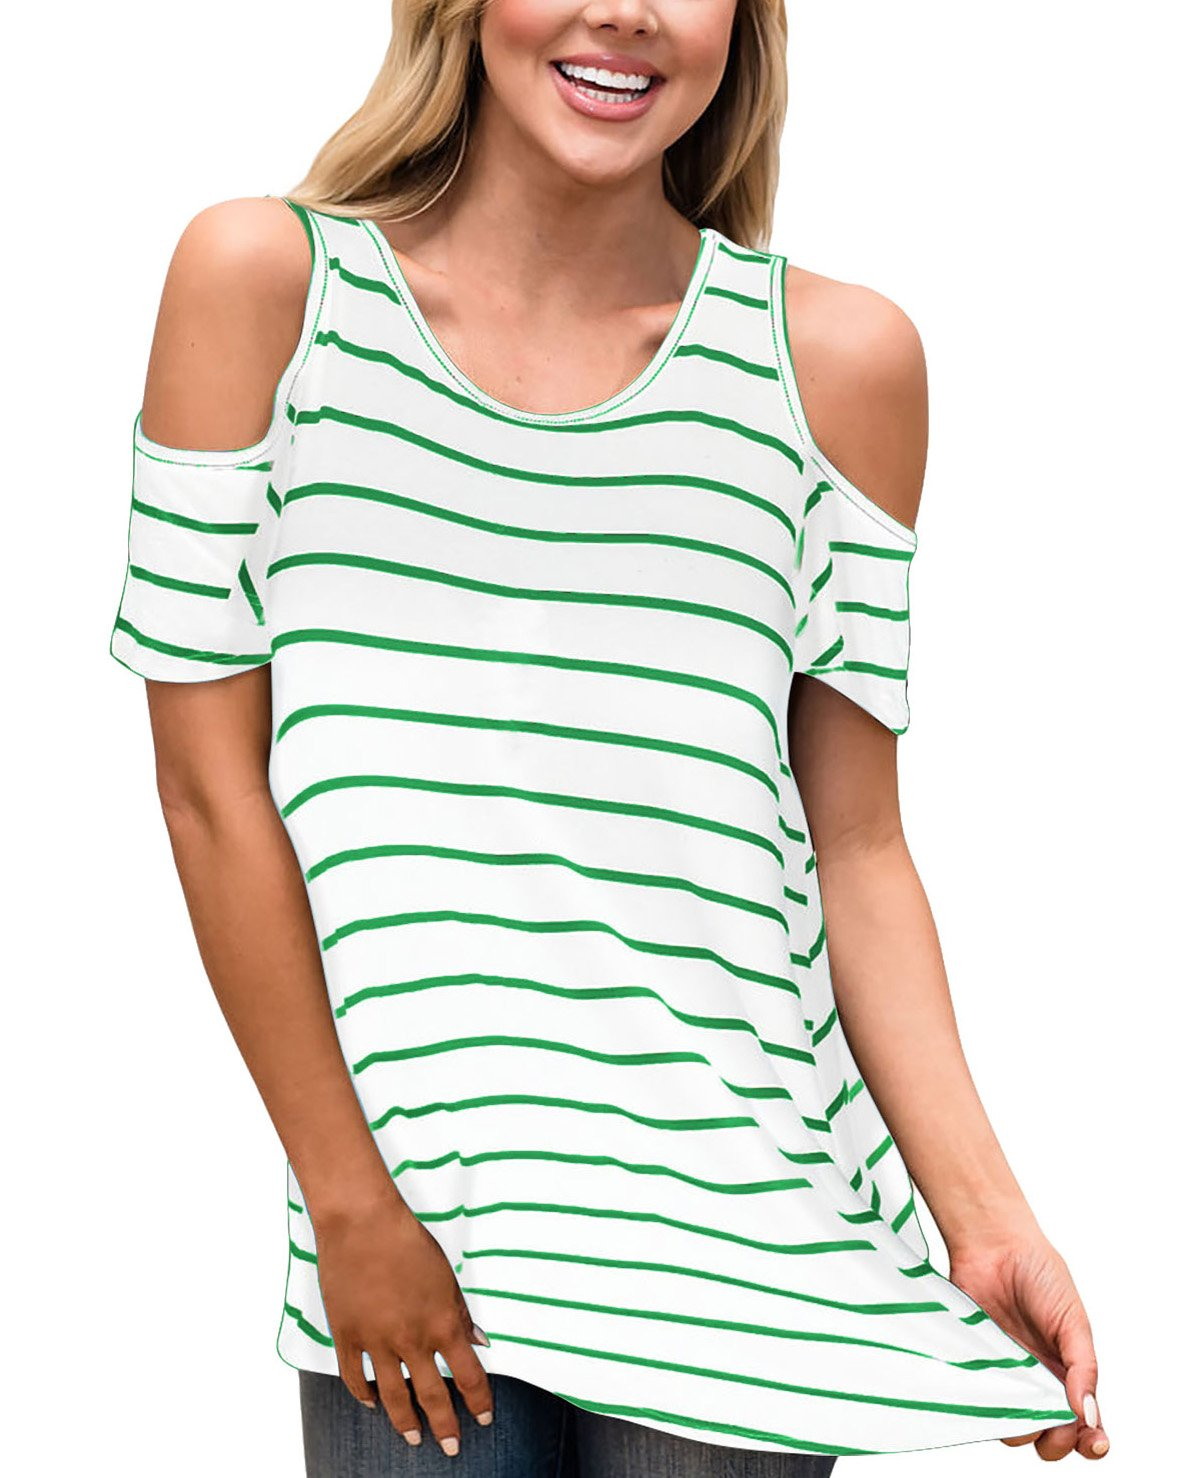 Aliex Women's Cold Shoulder Casual Tunic Top Short Sleeve Blouse T-Shirt Stripe Green M